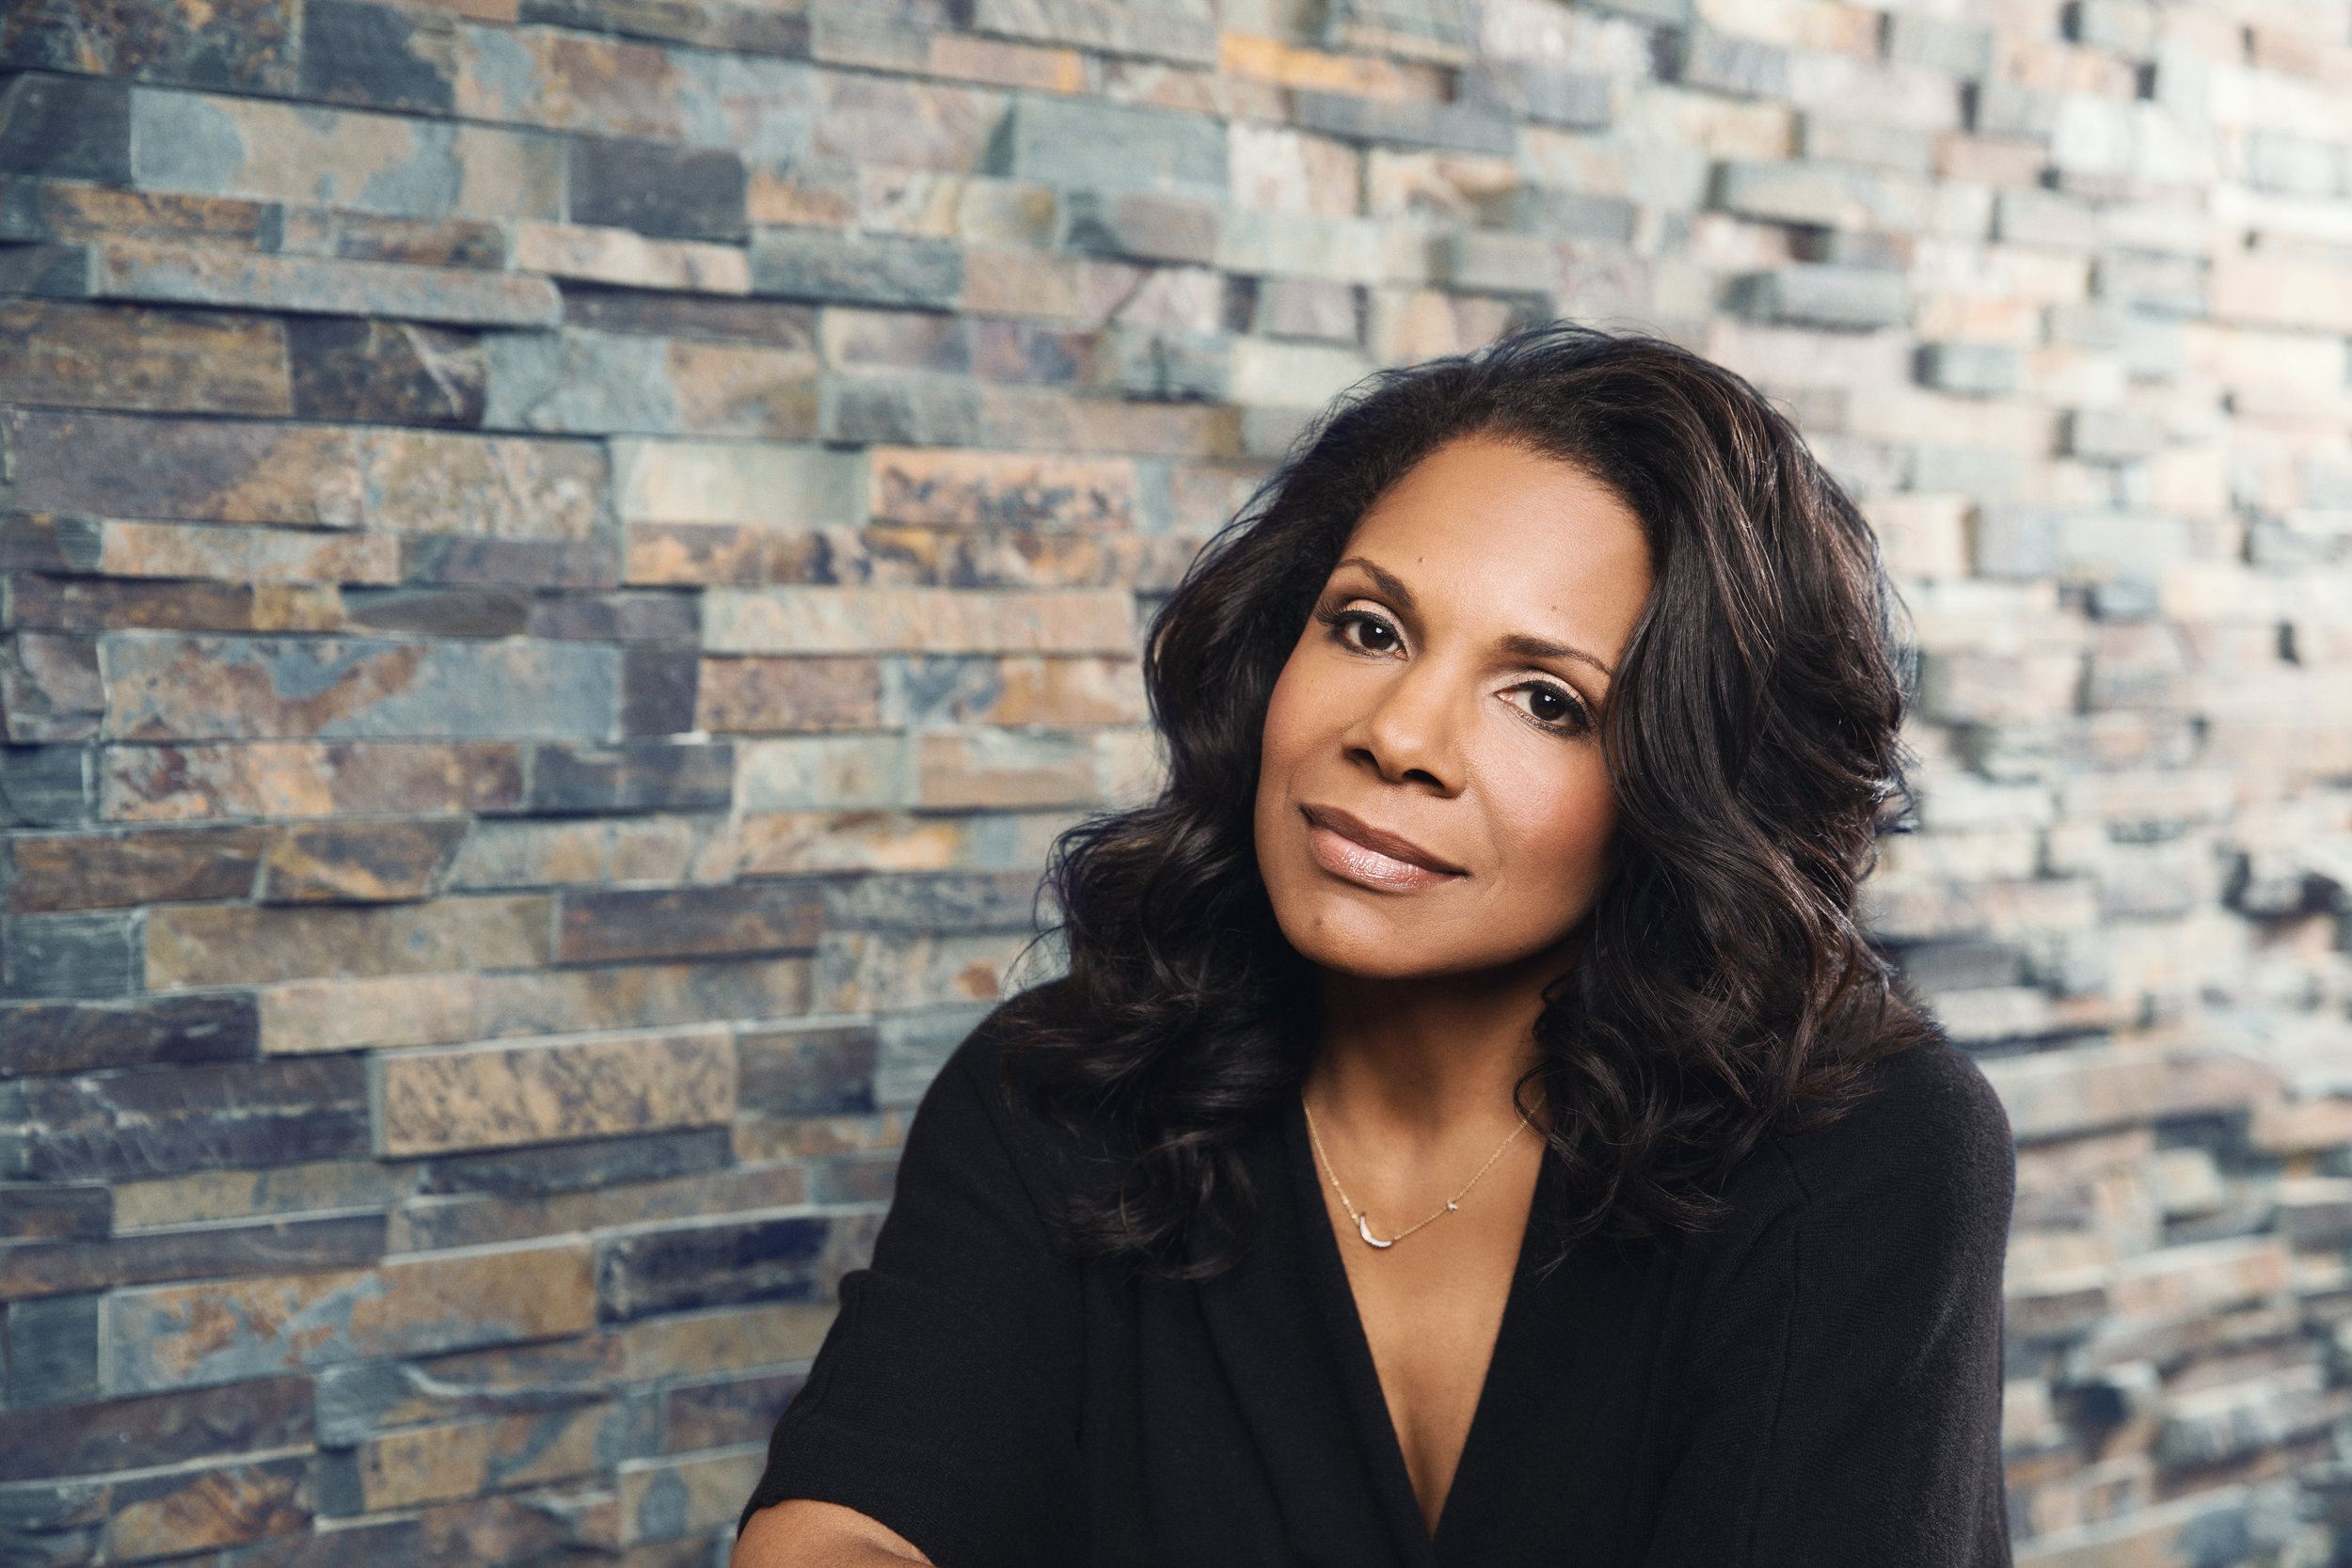 Audra McDonald, from ABC's Private Practice and CBS's The Good Wife